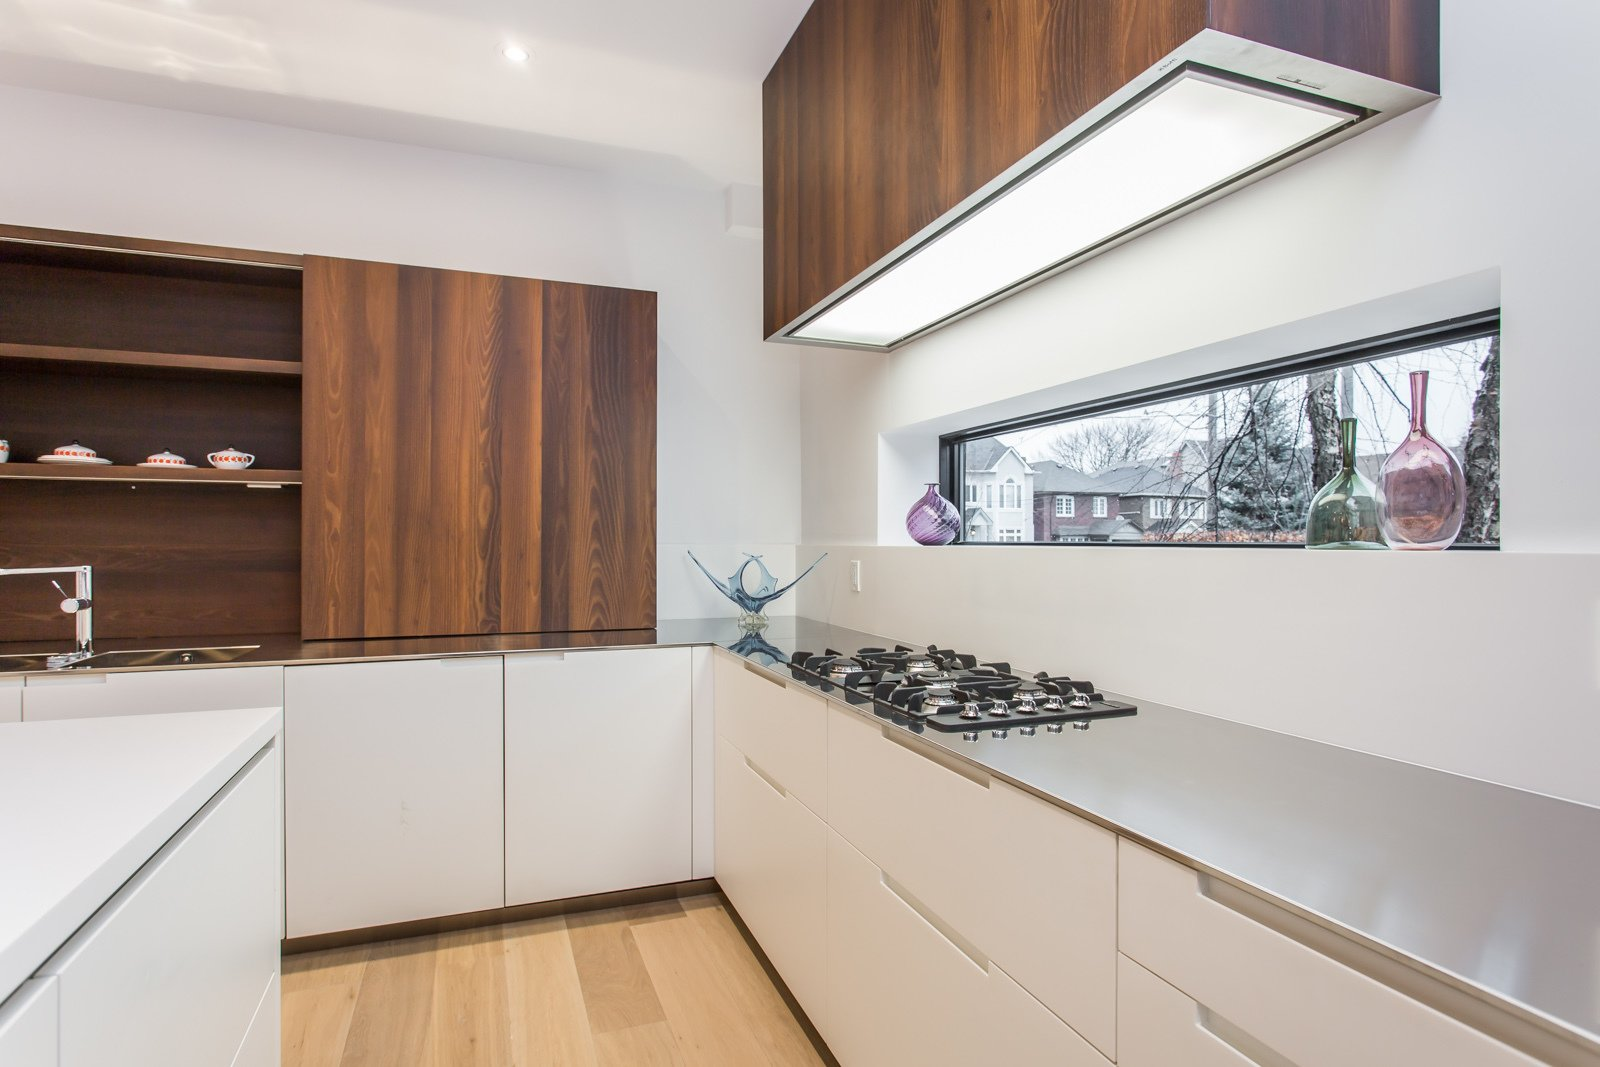 A long window above the countertop provides a nice view to the outside world while cooking.   Manor Road house